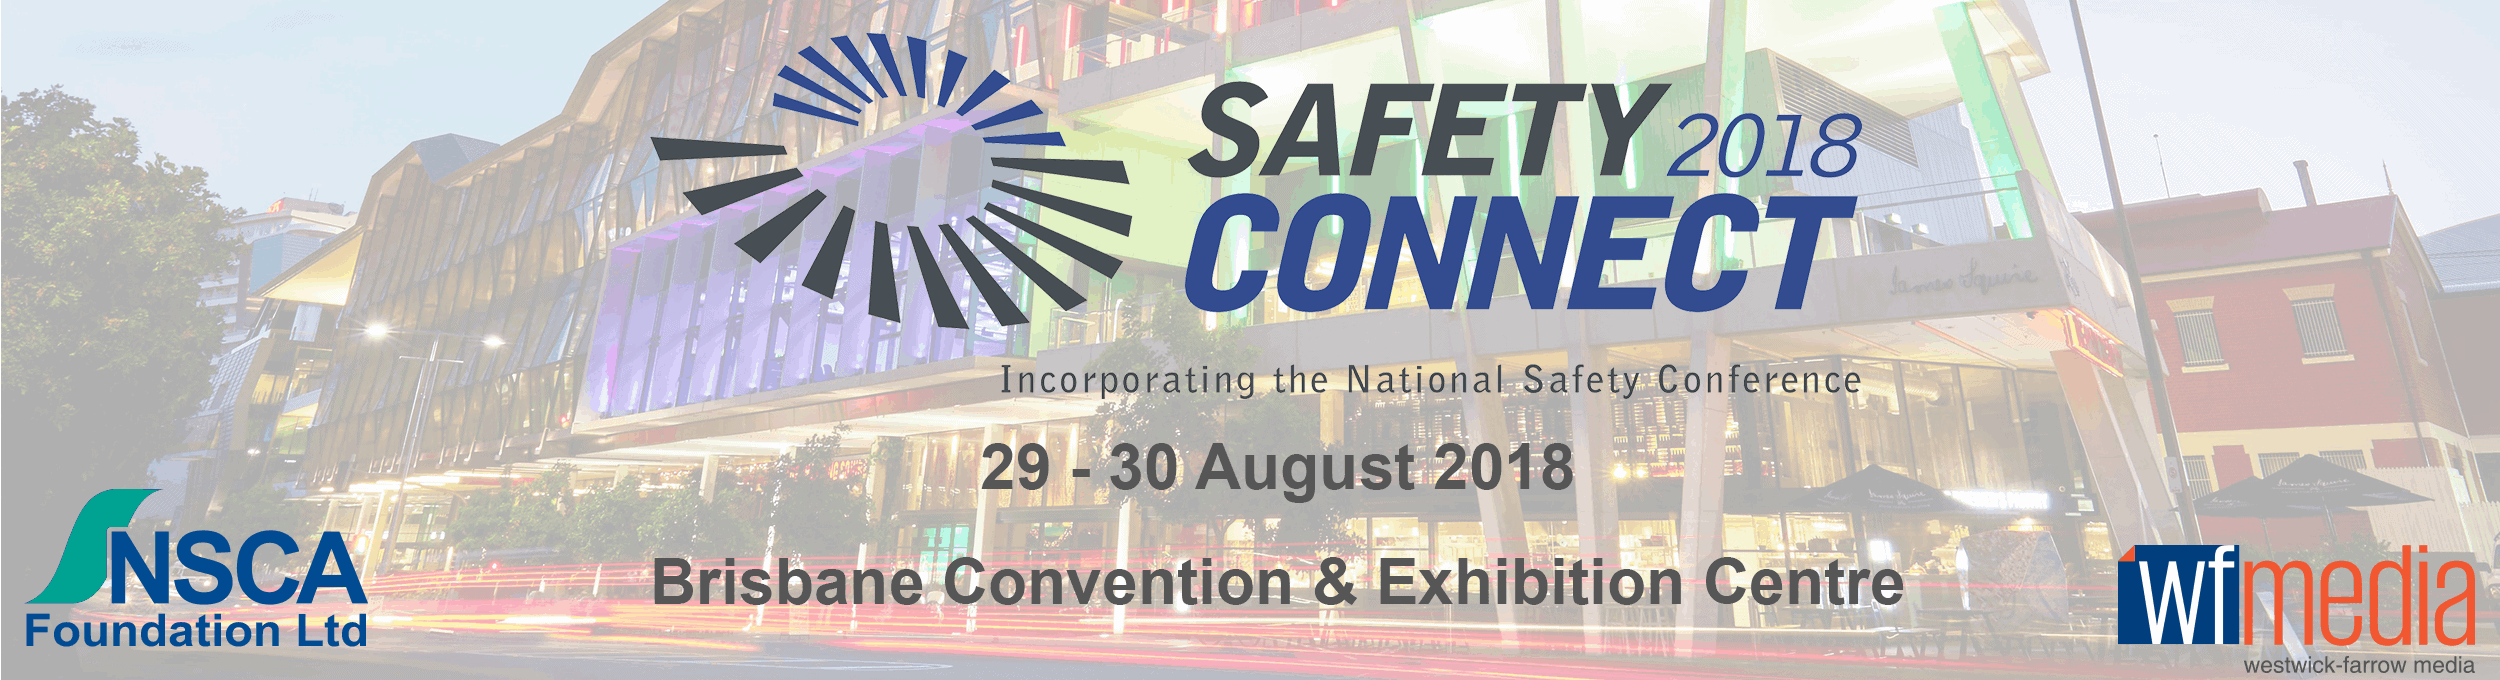 safety connect 2018 1